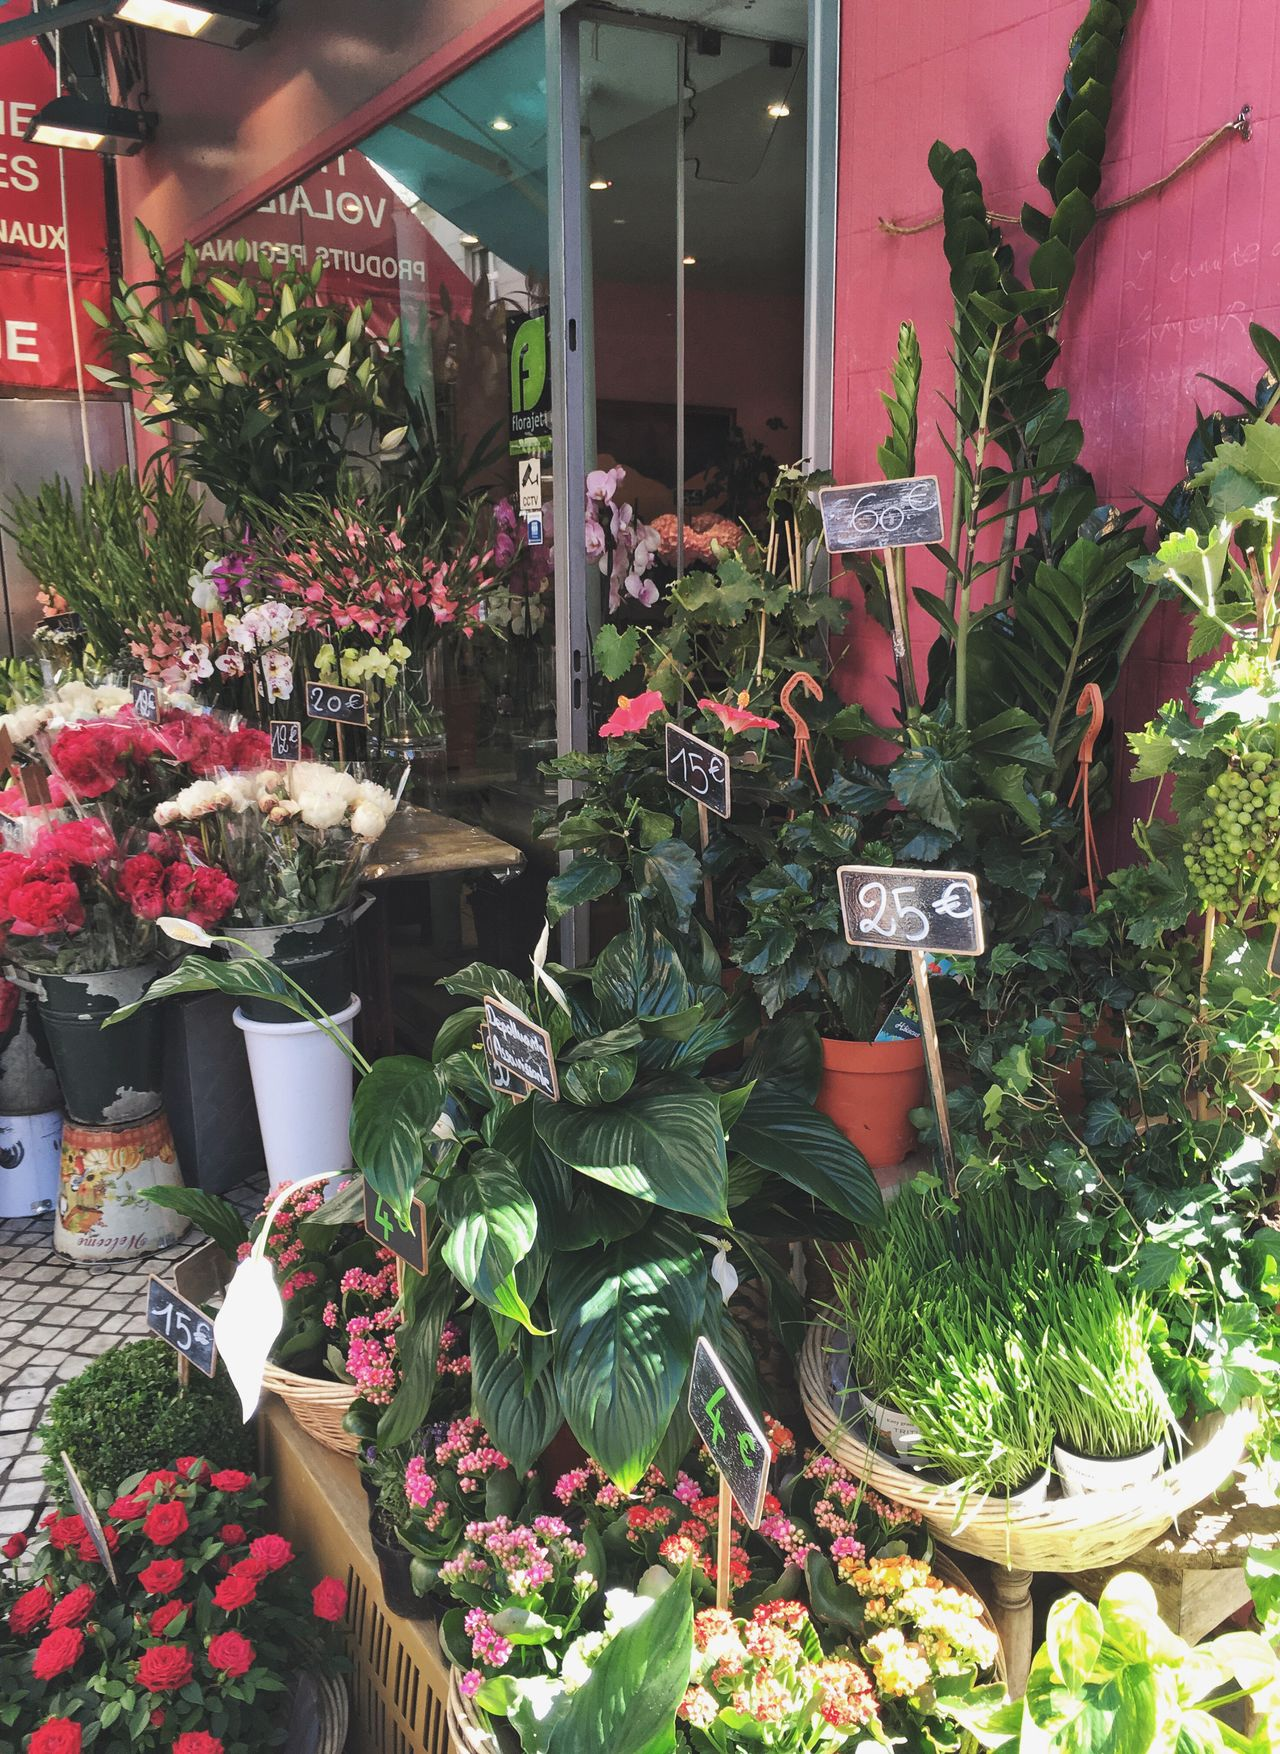 Flower Plant Potted Plant Retail  Store Nature Business Florist Growth Flower Shop Variation Small Business Freshness Beauty In Nature Business Finance And Industry For Sale Fragility No People Outdoors Day Colorful Walking Around Streetphotography Vintage Style Travel Destinations